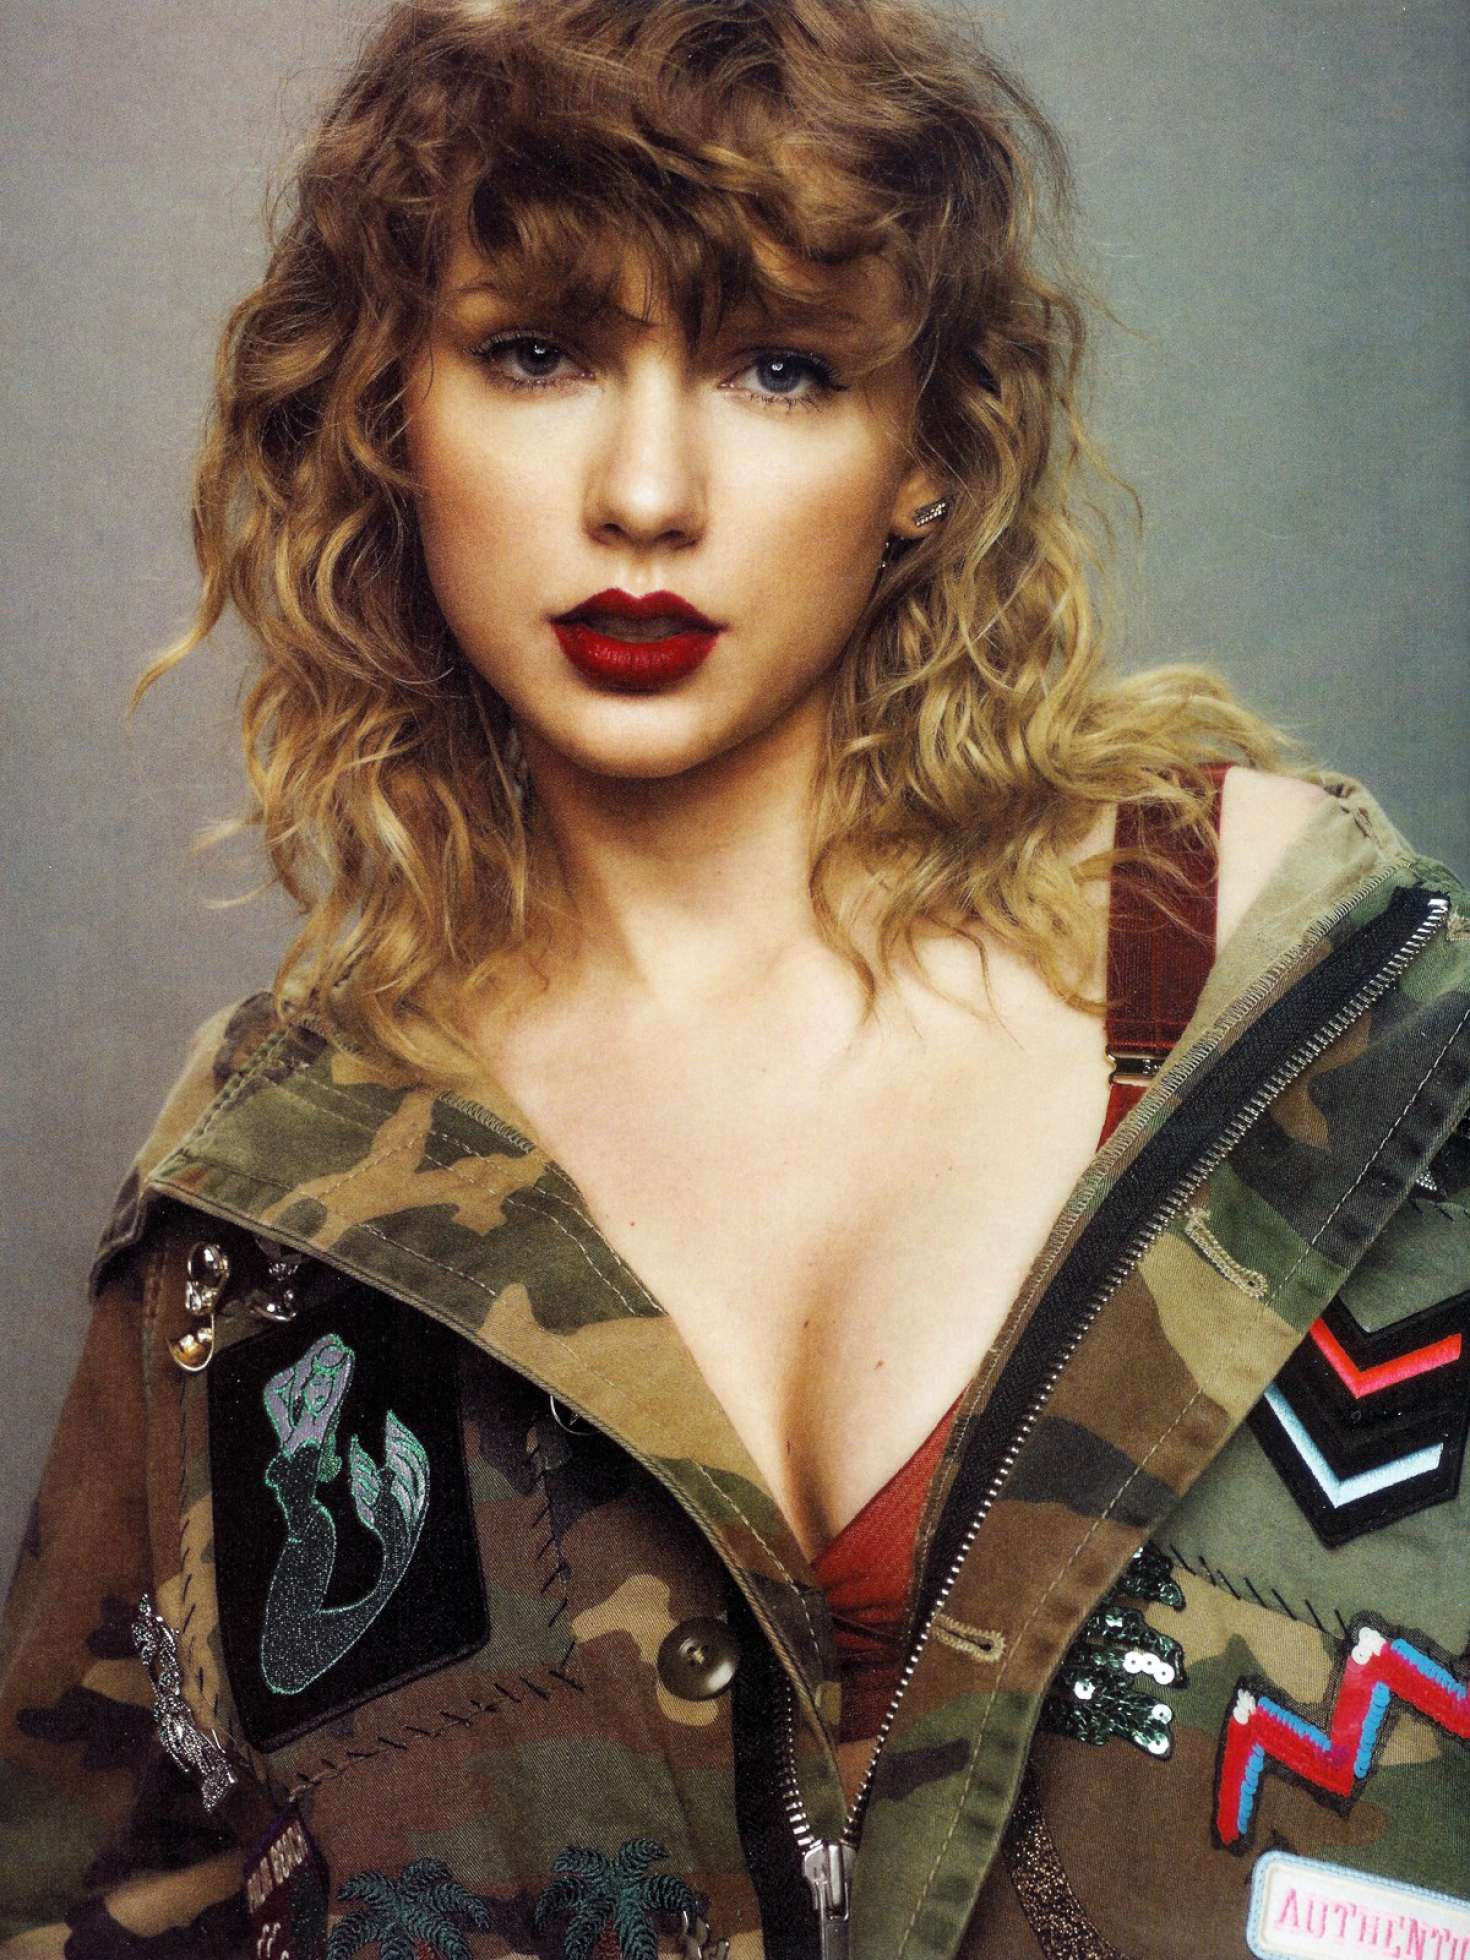 Taylor Swift - Promo Pics for her sixth album Reputation 2017